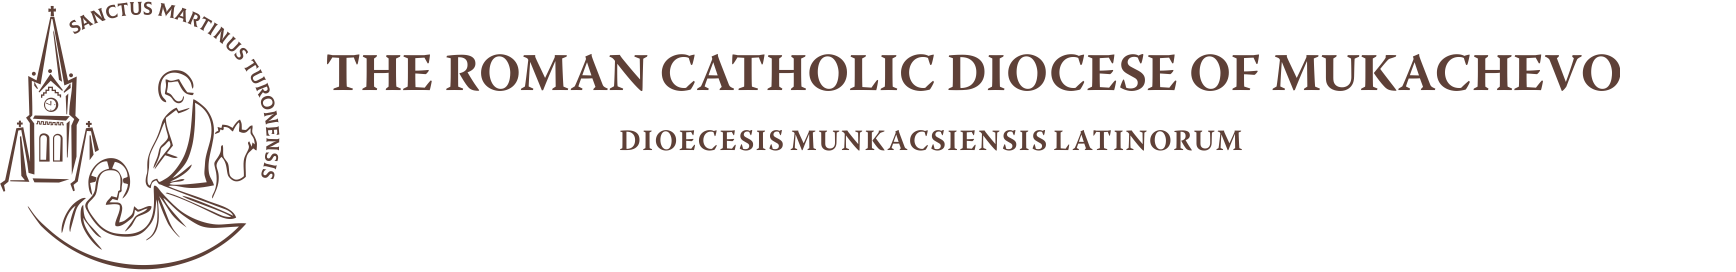 The Roman Catholic Diocese of Mukachevo